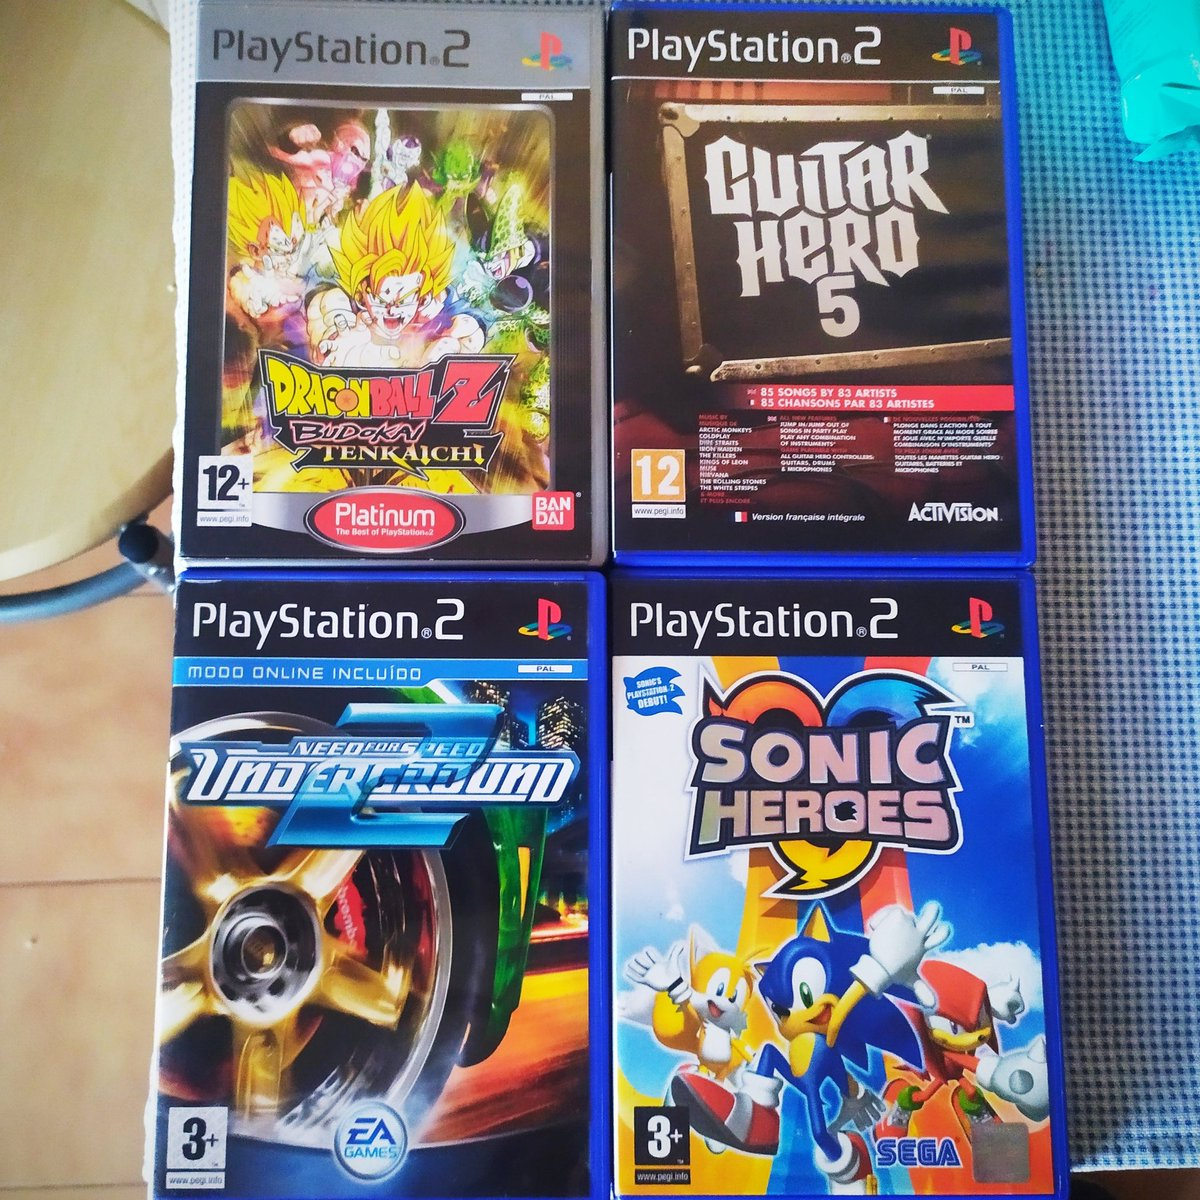 Another handful of #ps2 games really cheap! #playstation #dragonballz #sonicheroes #nfsunderground2 #needforspeed #guitarhero #gaming #uyapic.twitter.com/yOMi9jf75m